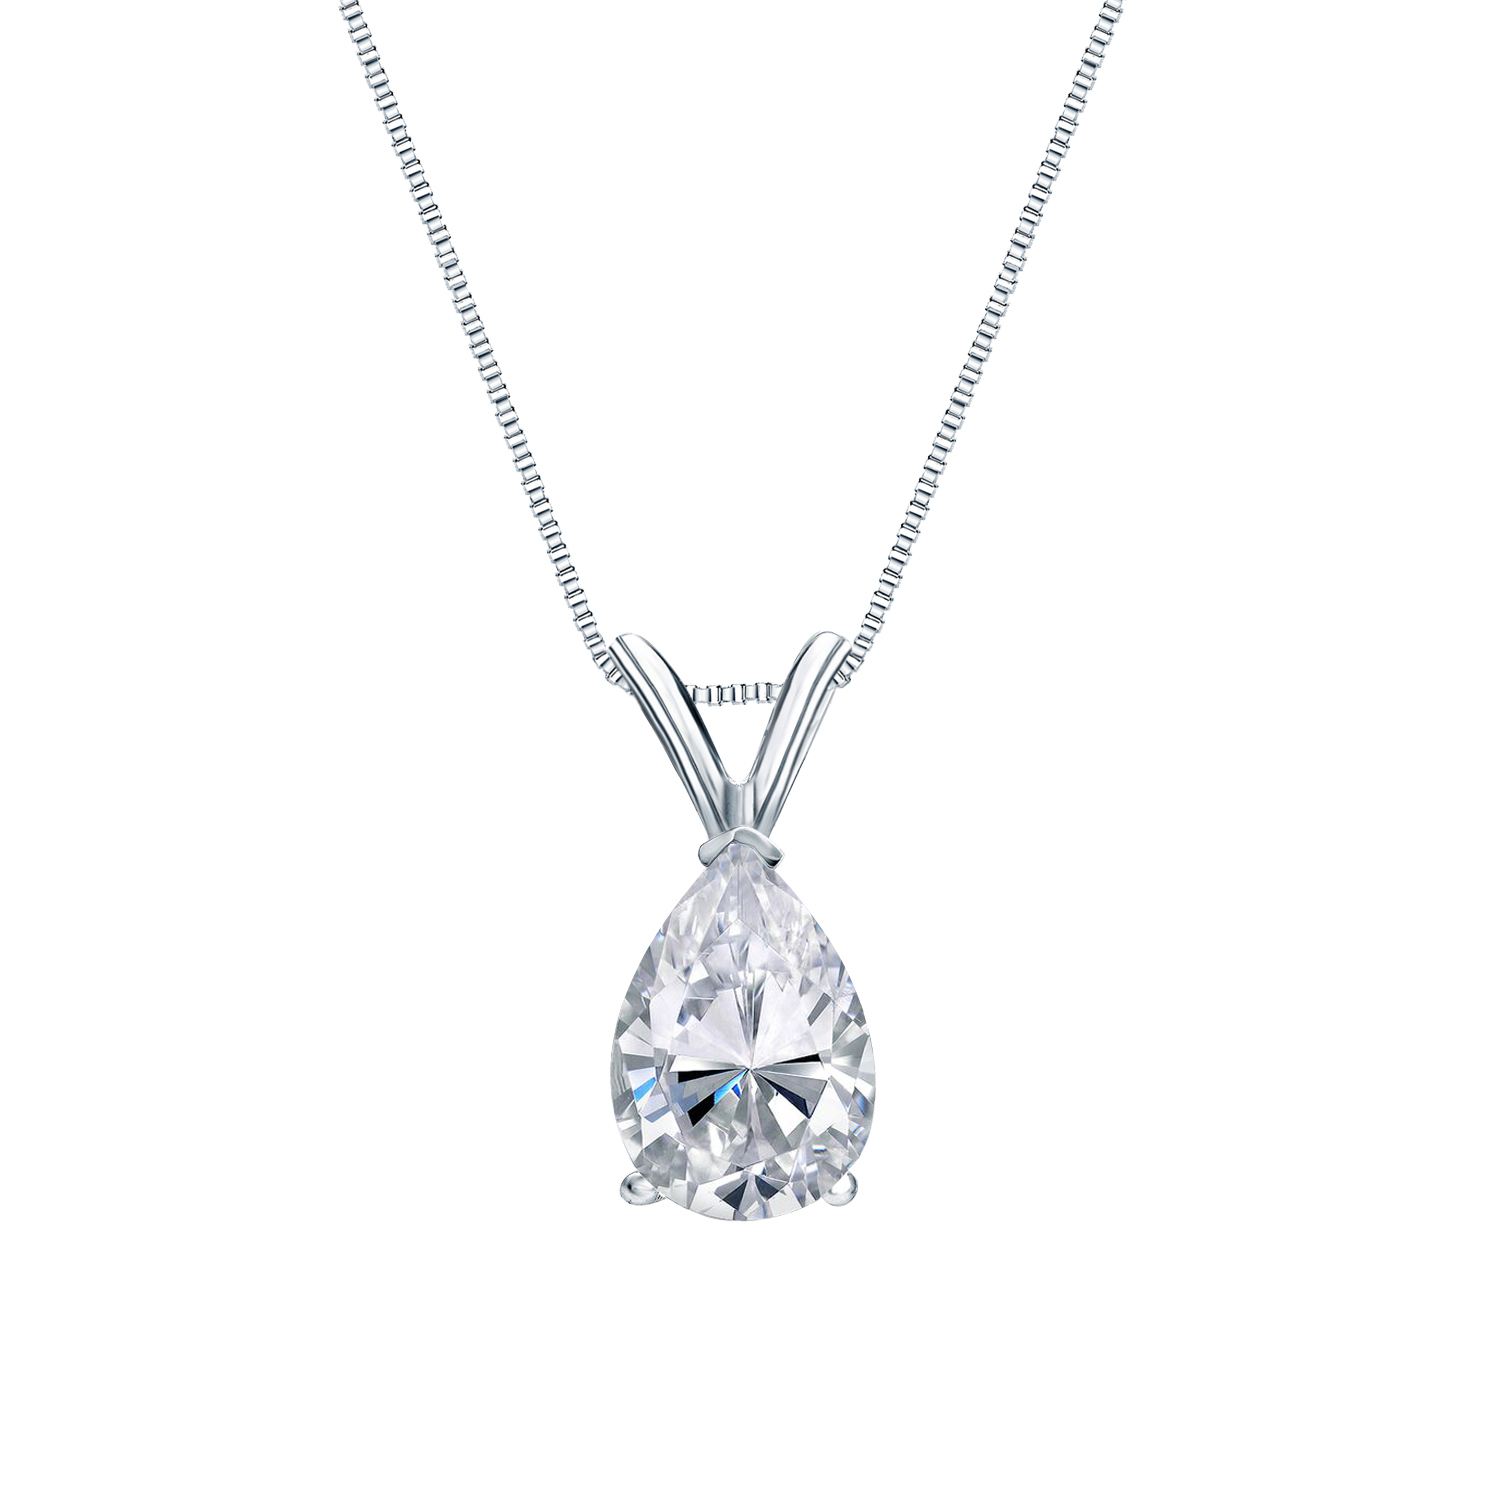 Certified 0.38 ct. tw. Pear Diamond Solitaire Pendant 18k White Gold V-End Prong (I-J, I1)